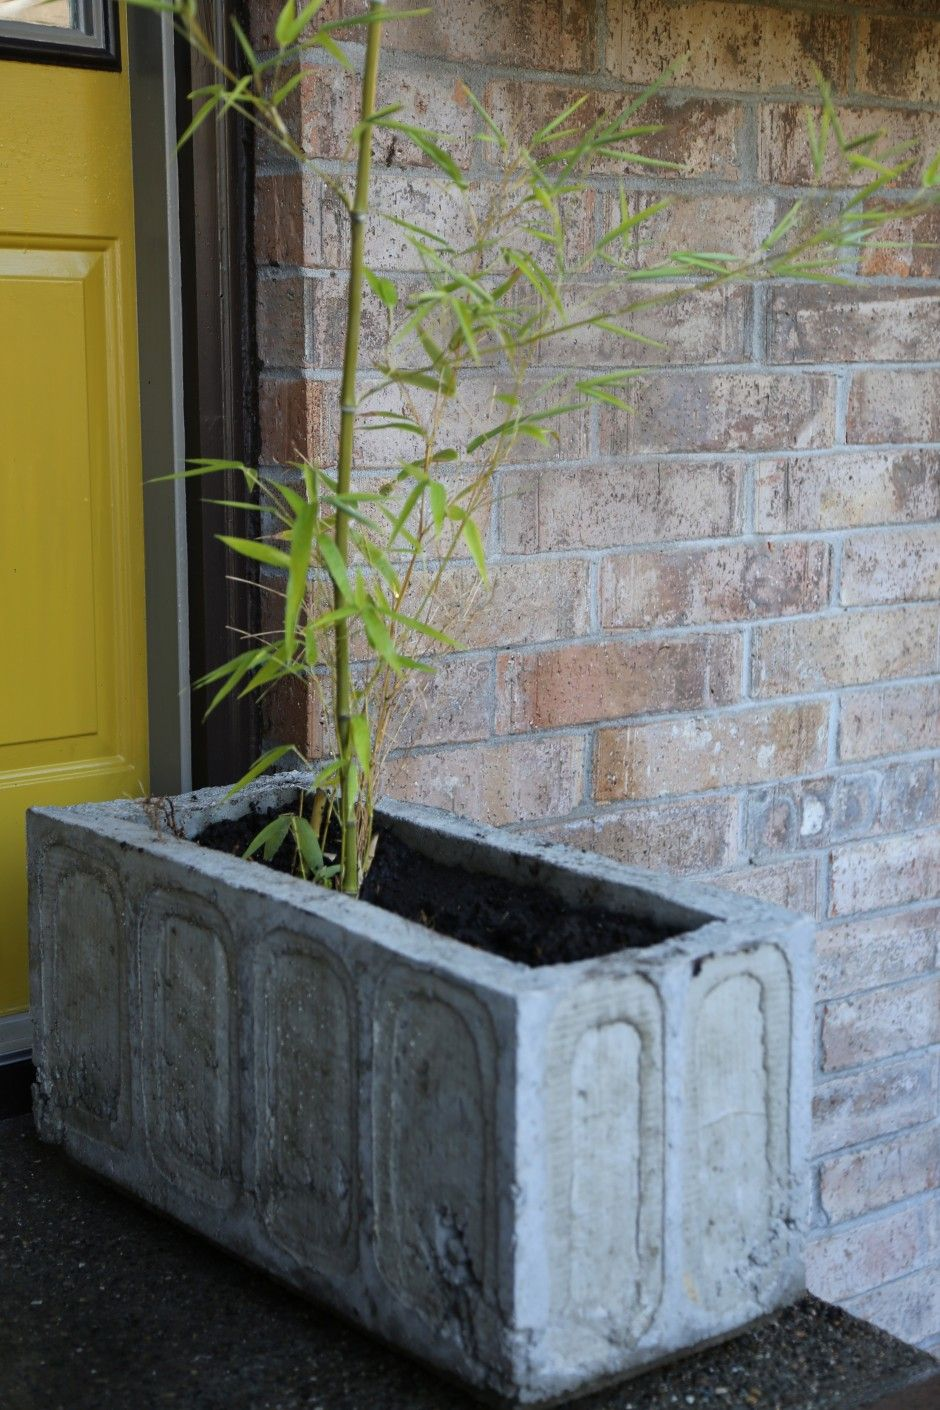 A Diy Concrete Planter It S Easier Than It Looks Diy Concrete Planters Concrete Planters Diy Planters